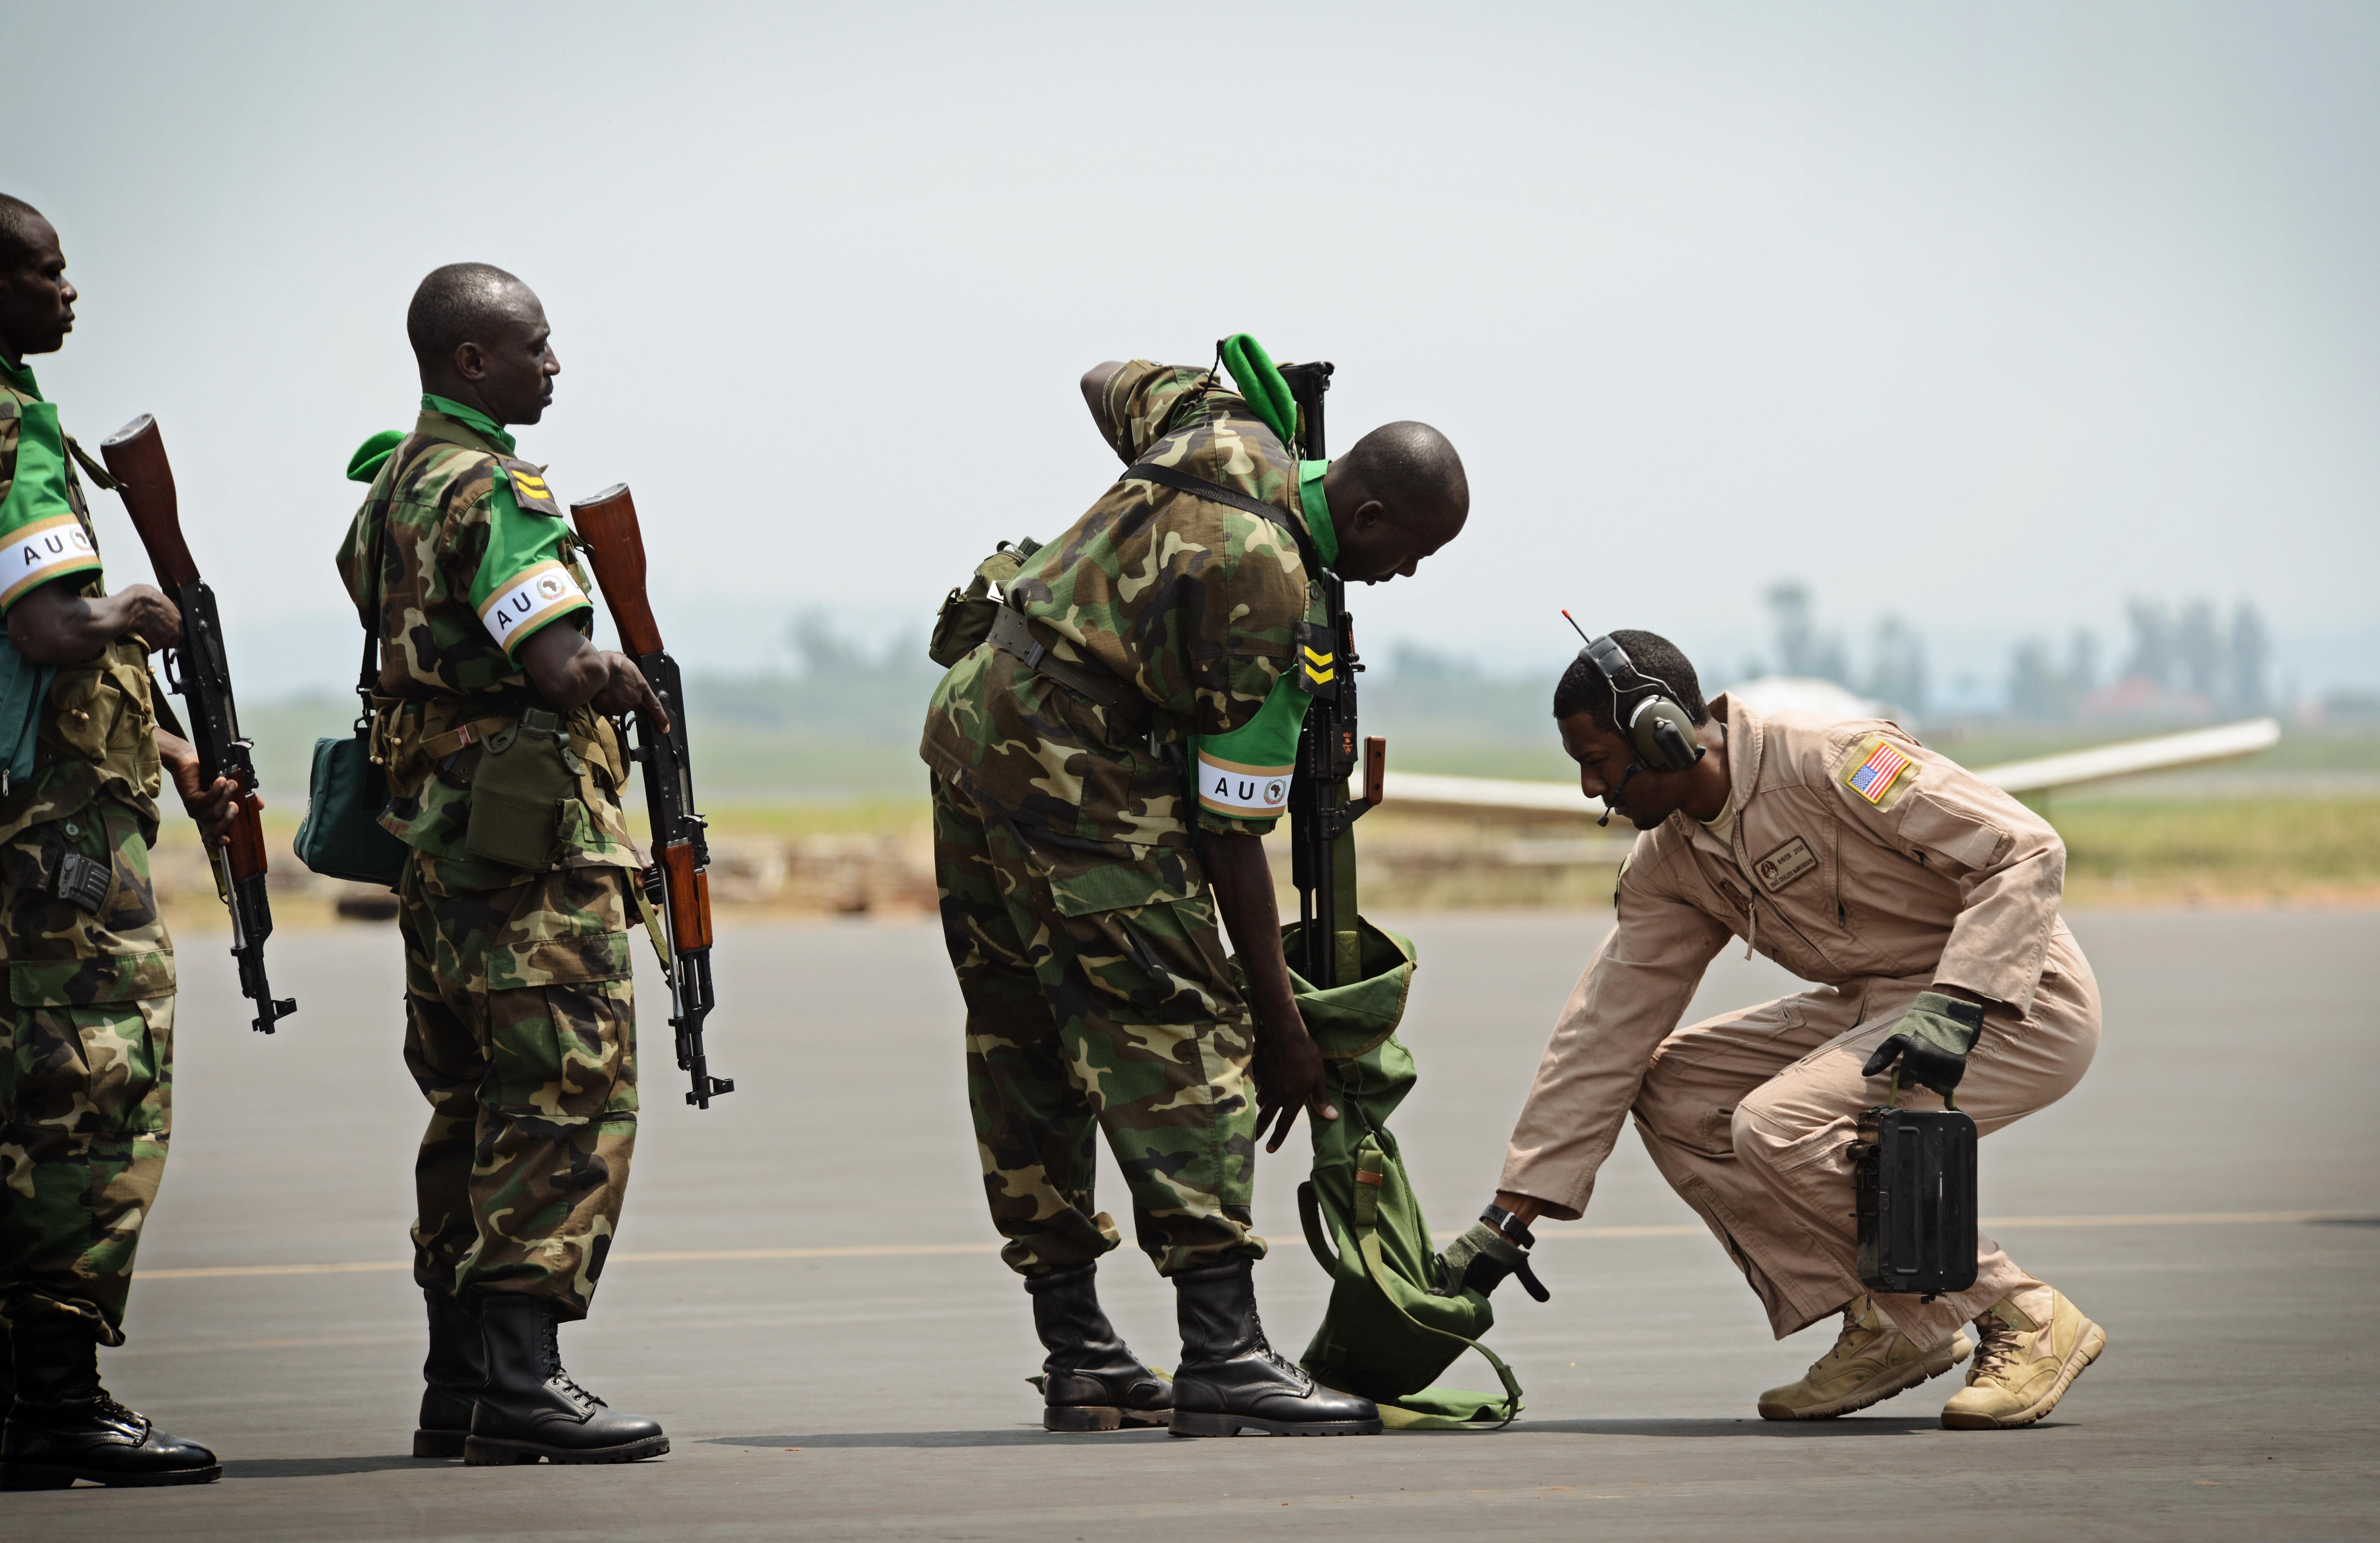 Rwandan soldiers wait in line to have their weapons inspected by Staff Sgt. Curtis McWoodson